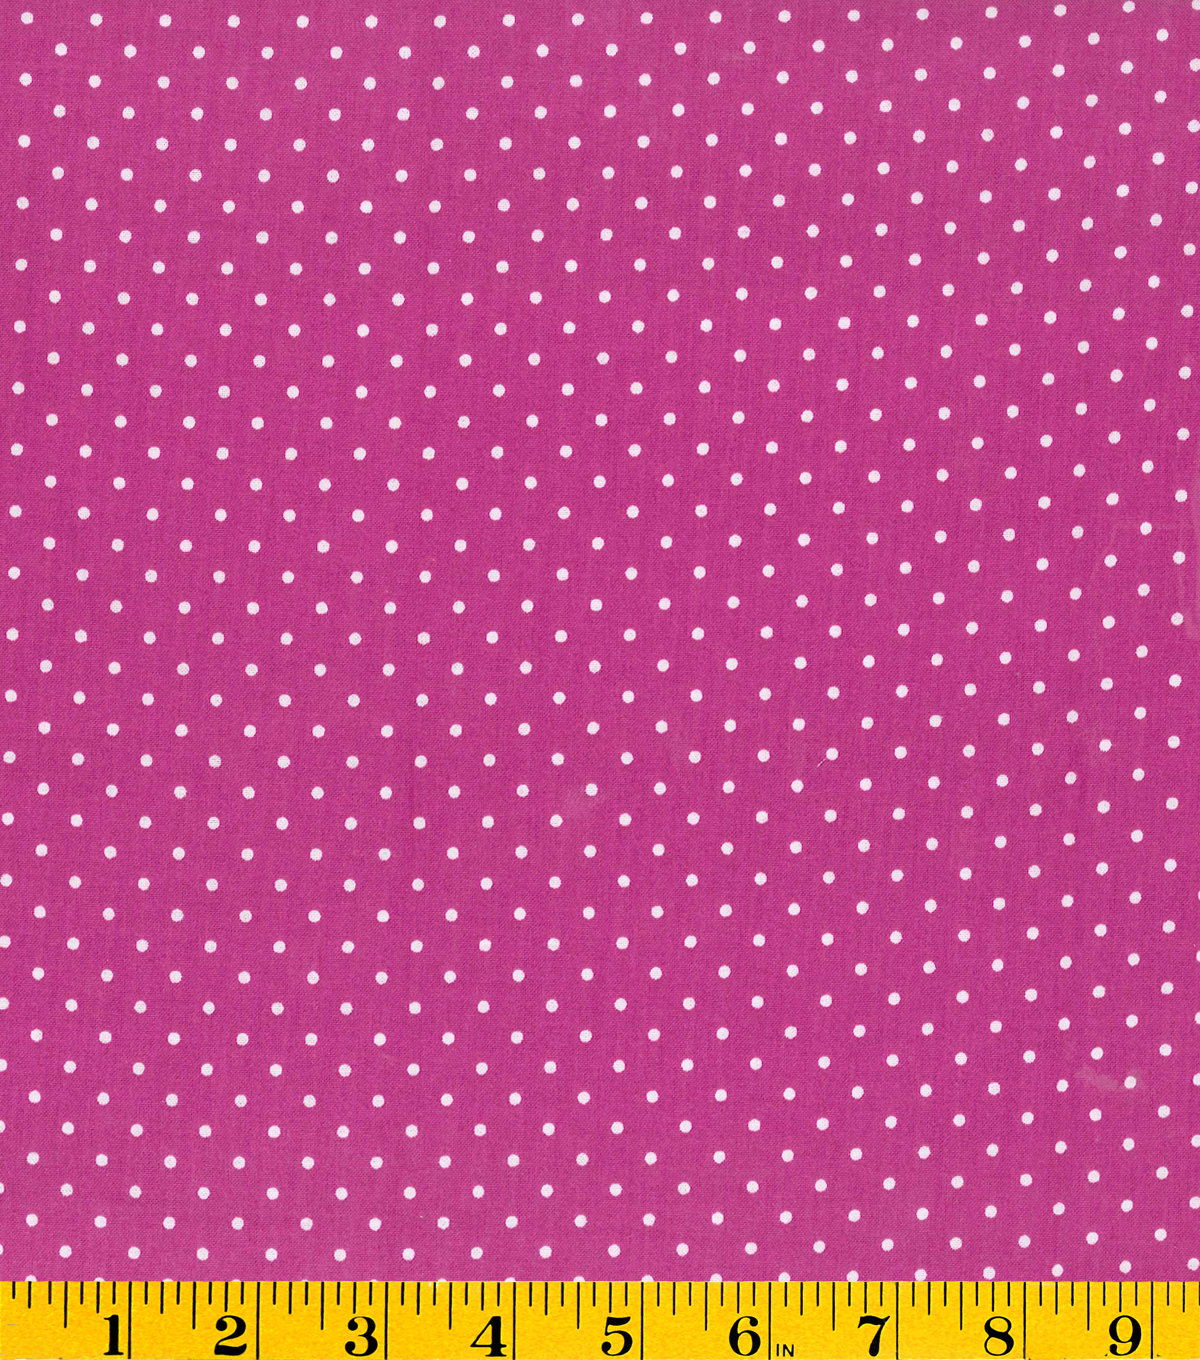 Stonehill Collection Cotton Fabric - Dots Magenta